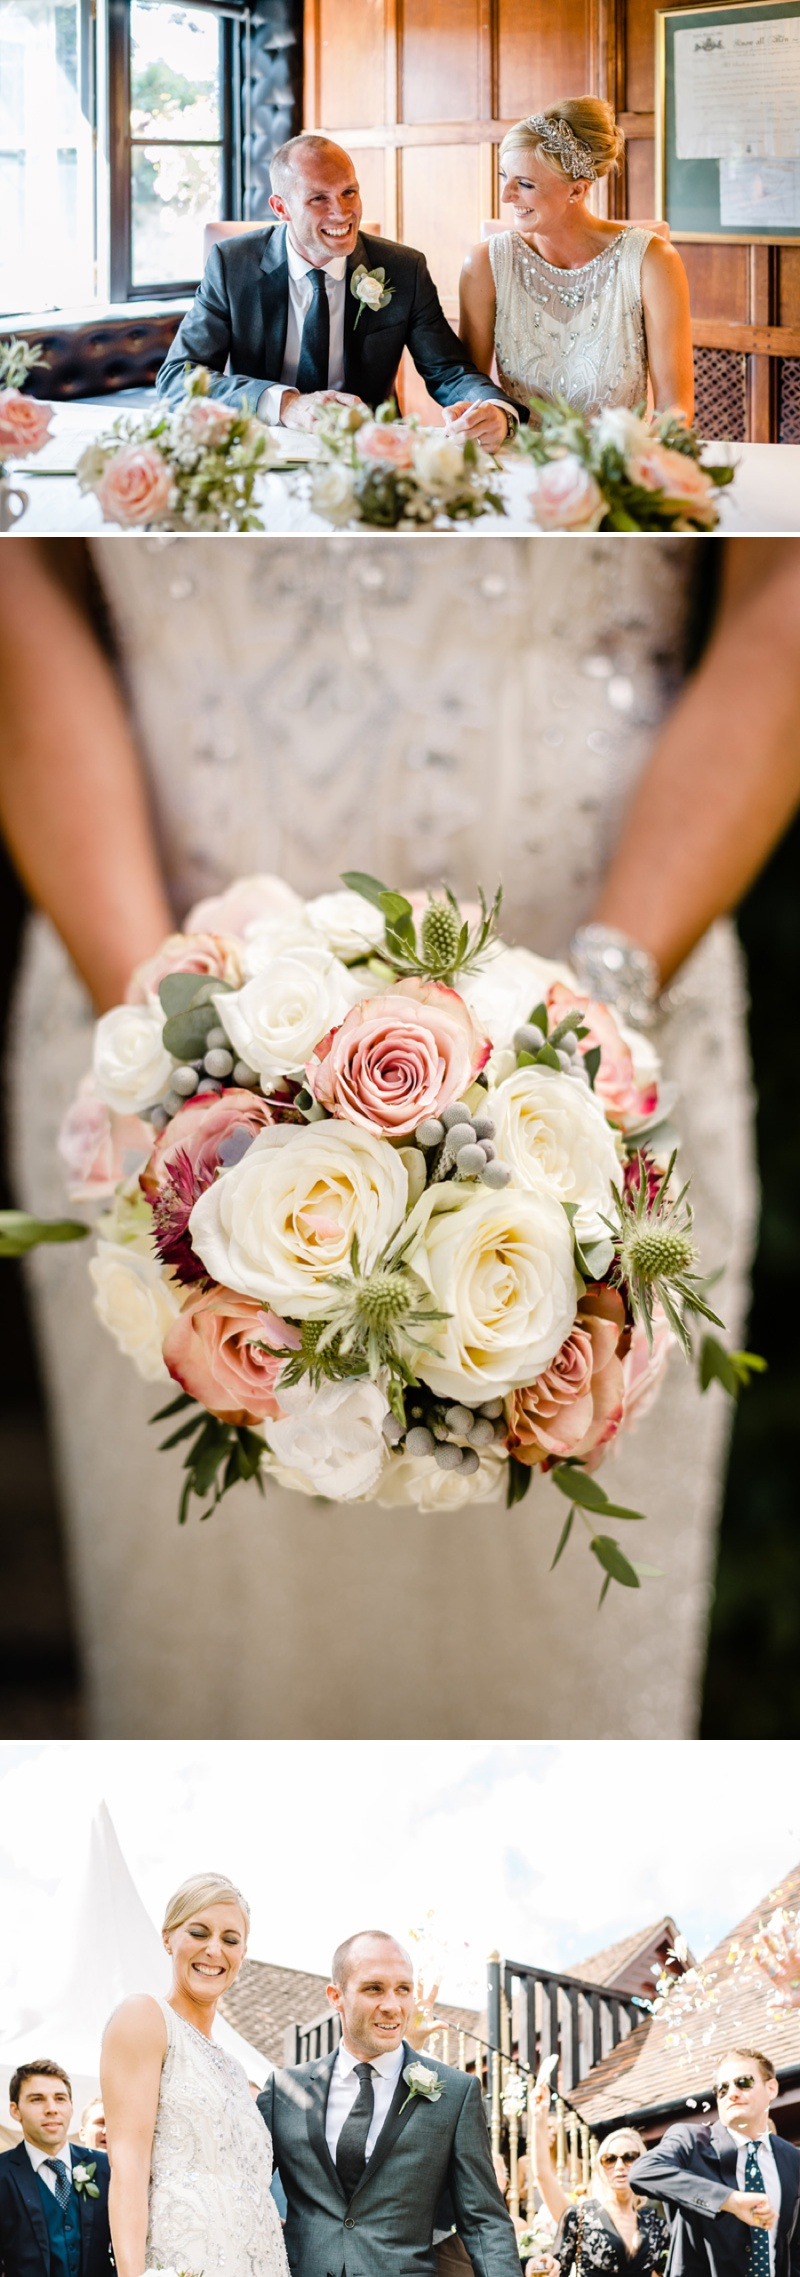 A Beautiful Music Inspired Wedding At The Crazy Bear In Stadhampton With A Jenny Packham Esme Wedding Dress and A Pink And Cream Avalanche Rose Bouquet._0006